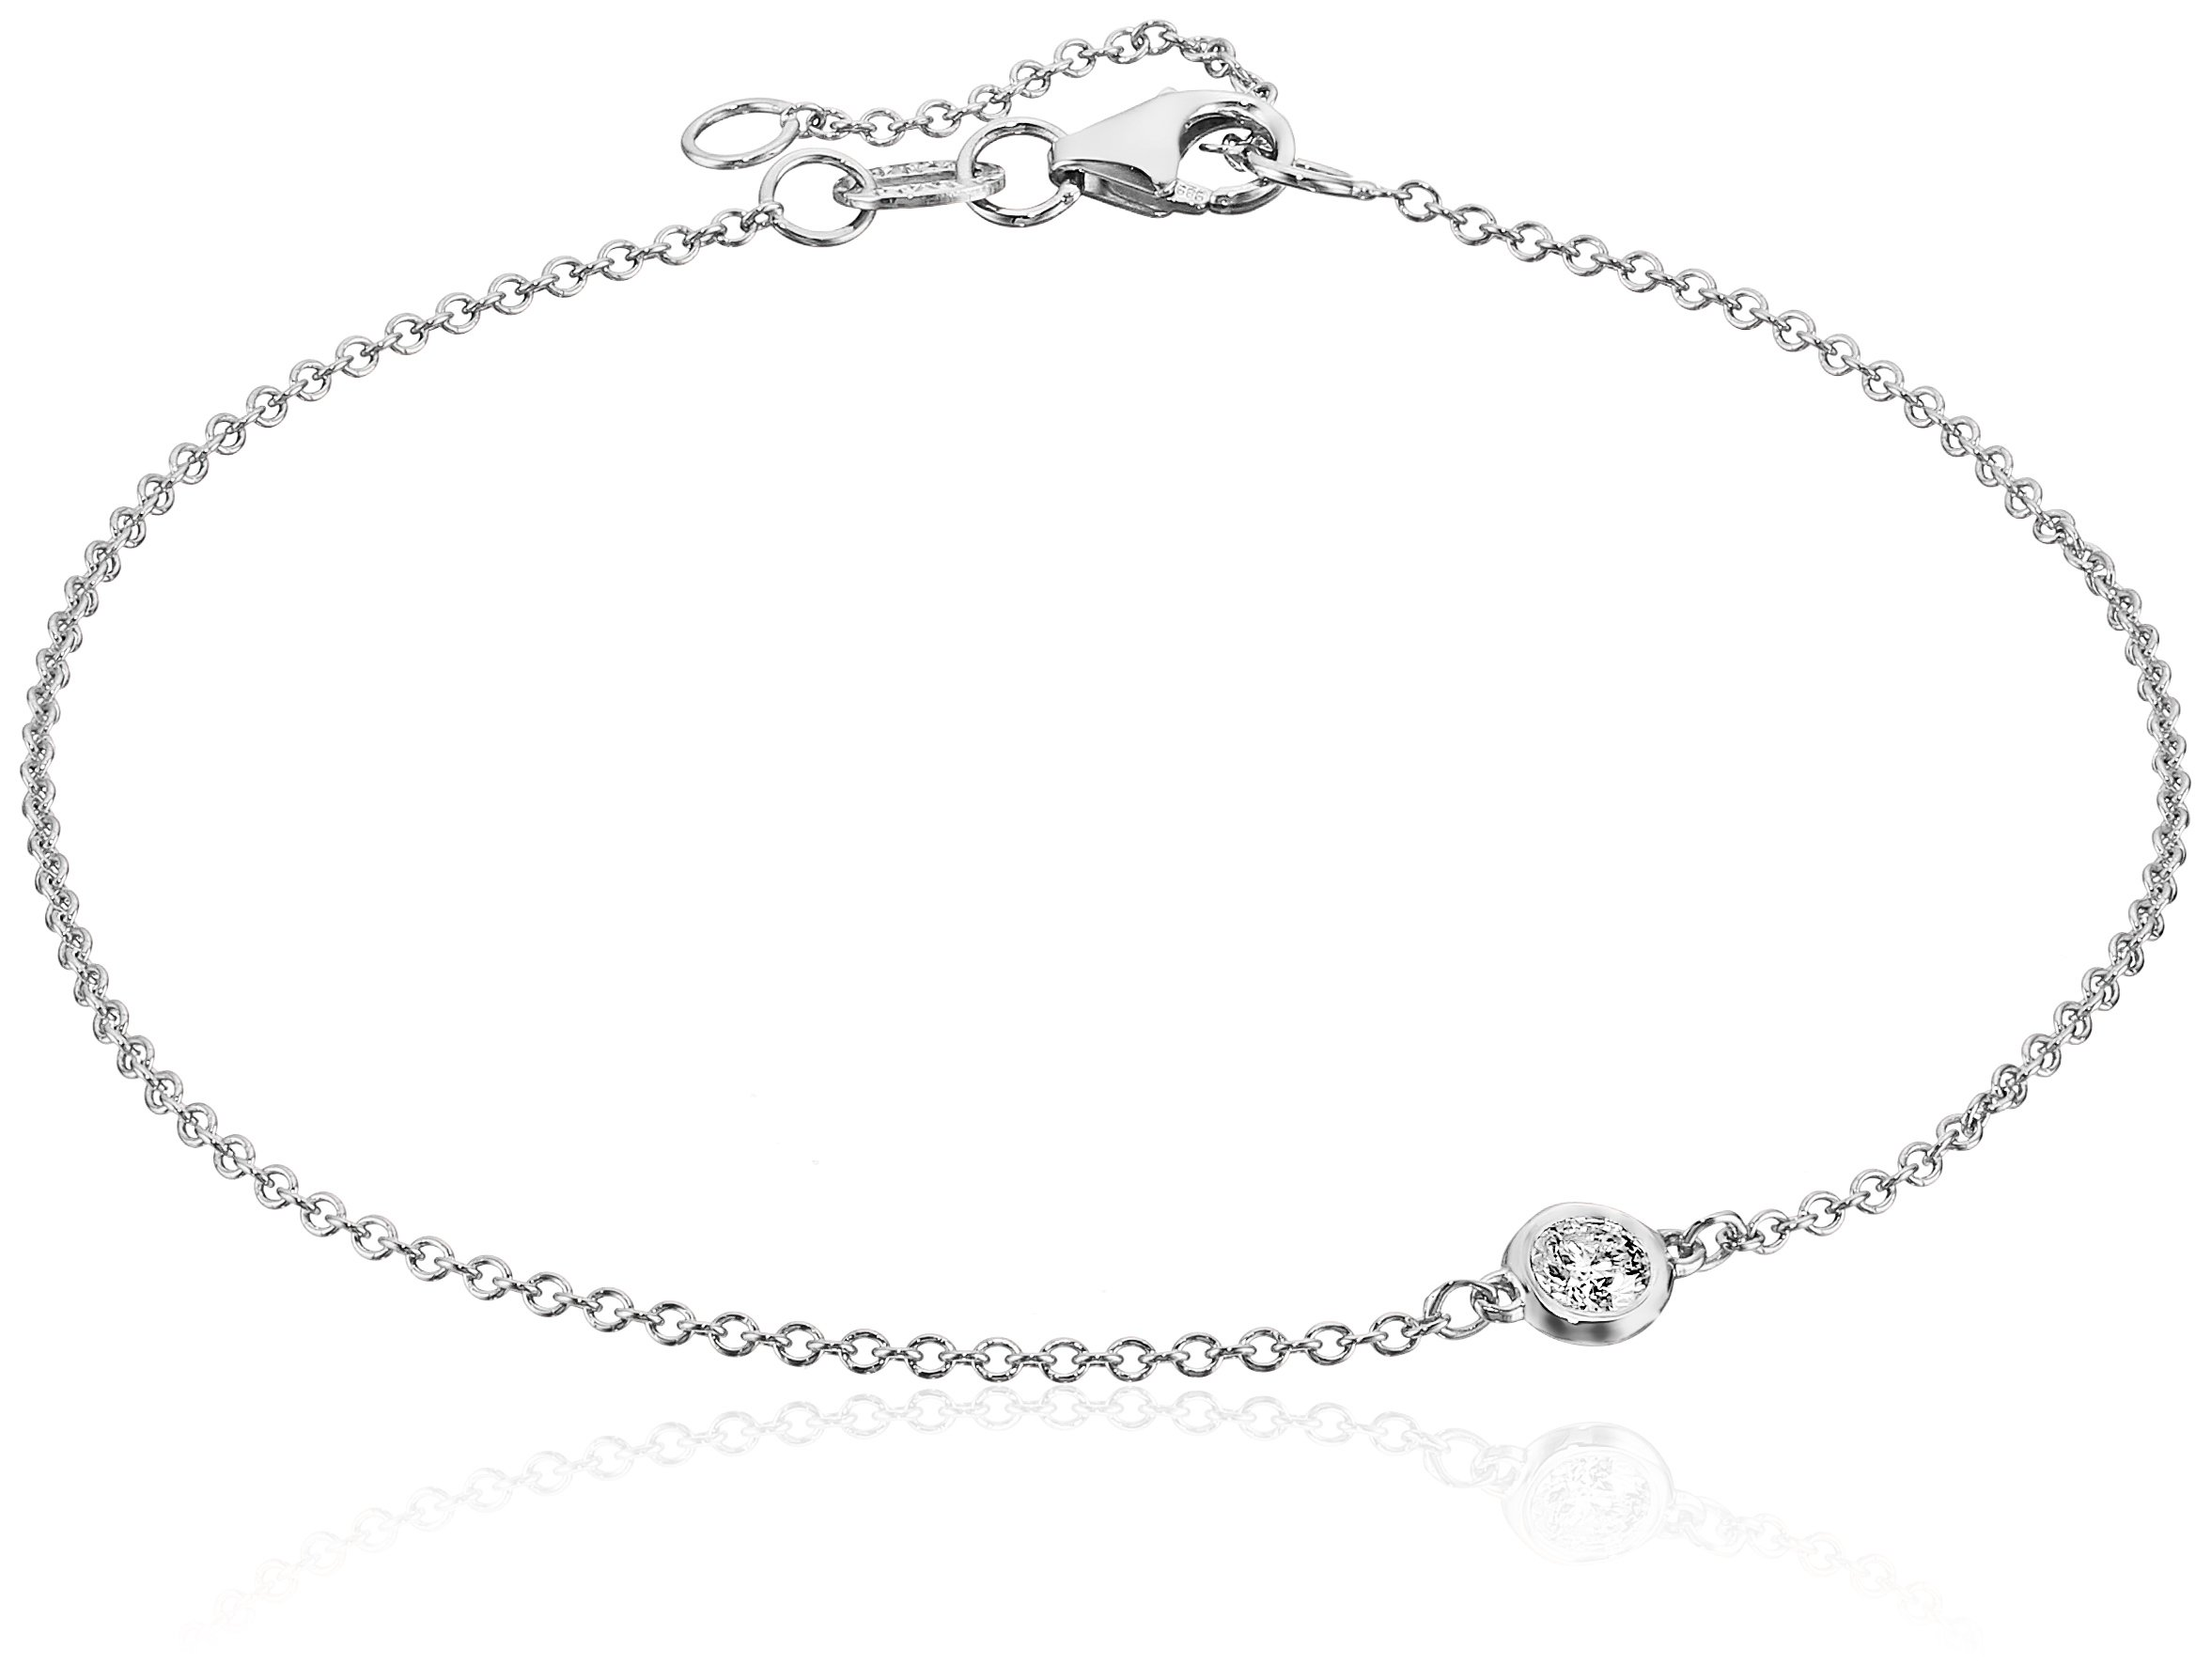 14k White Gold Solitaire Bezel Set Diamond with Lobster Clasp Strand Bracelet (1/10cttw, J-K Color, I2-I3 Clarity) by Amazon Collection